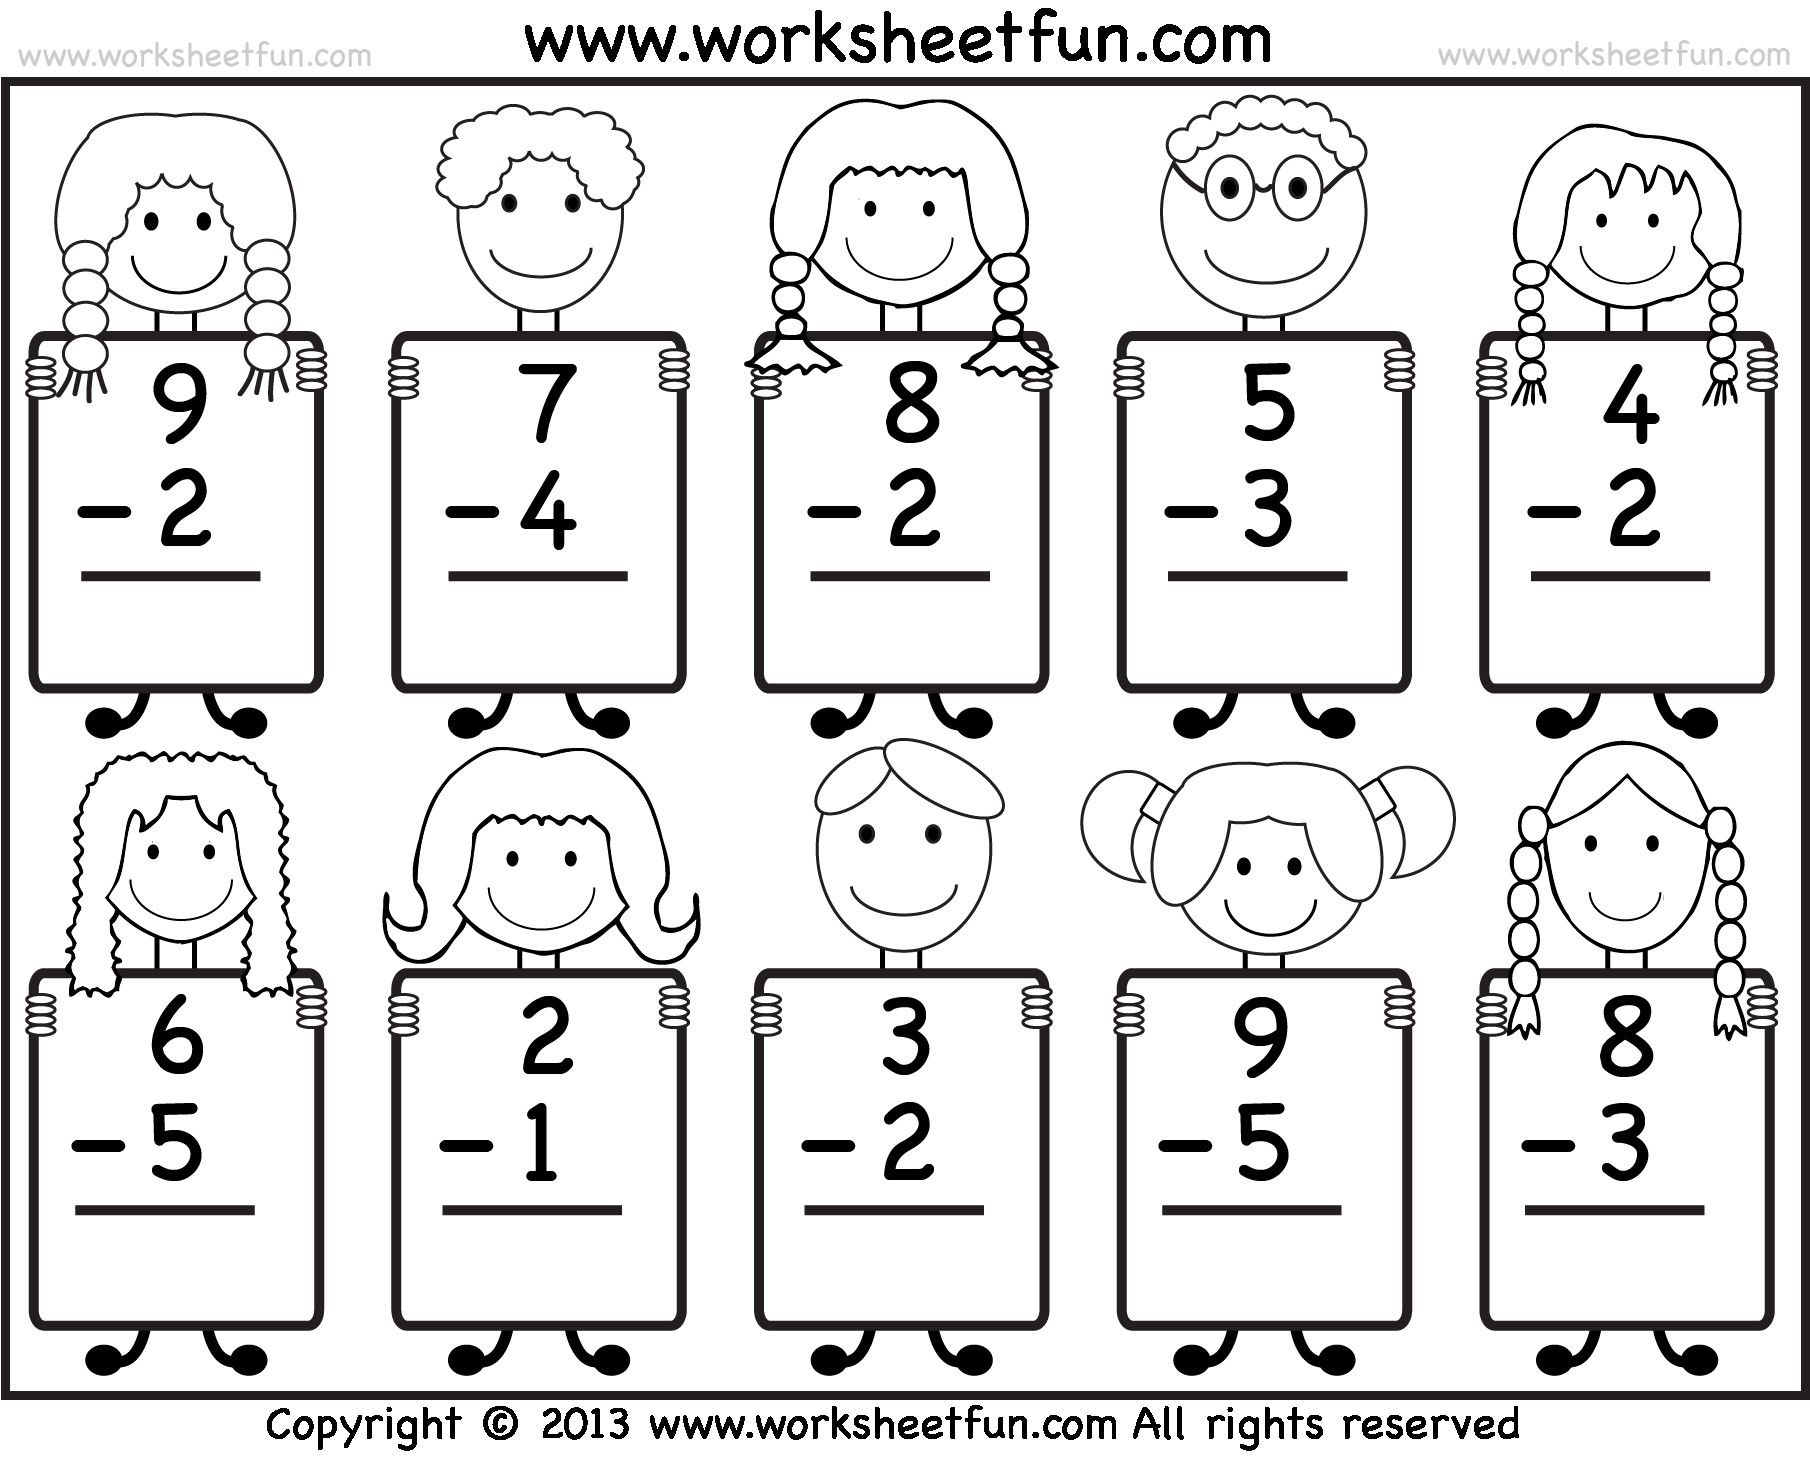 Classified Addition And Subtraction Worksheets For Grade 1